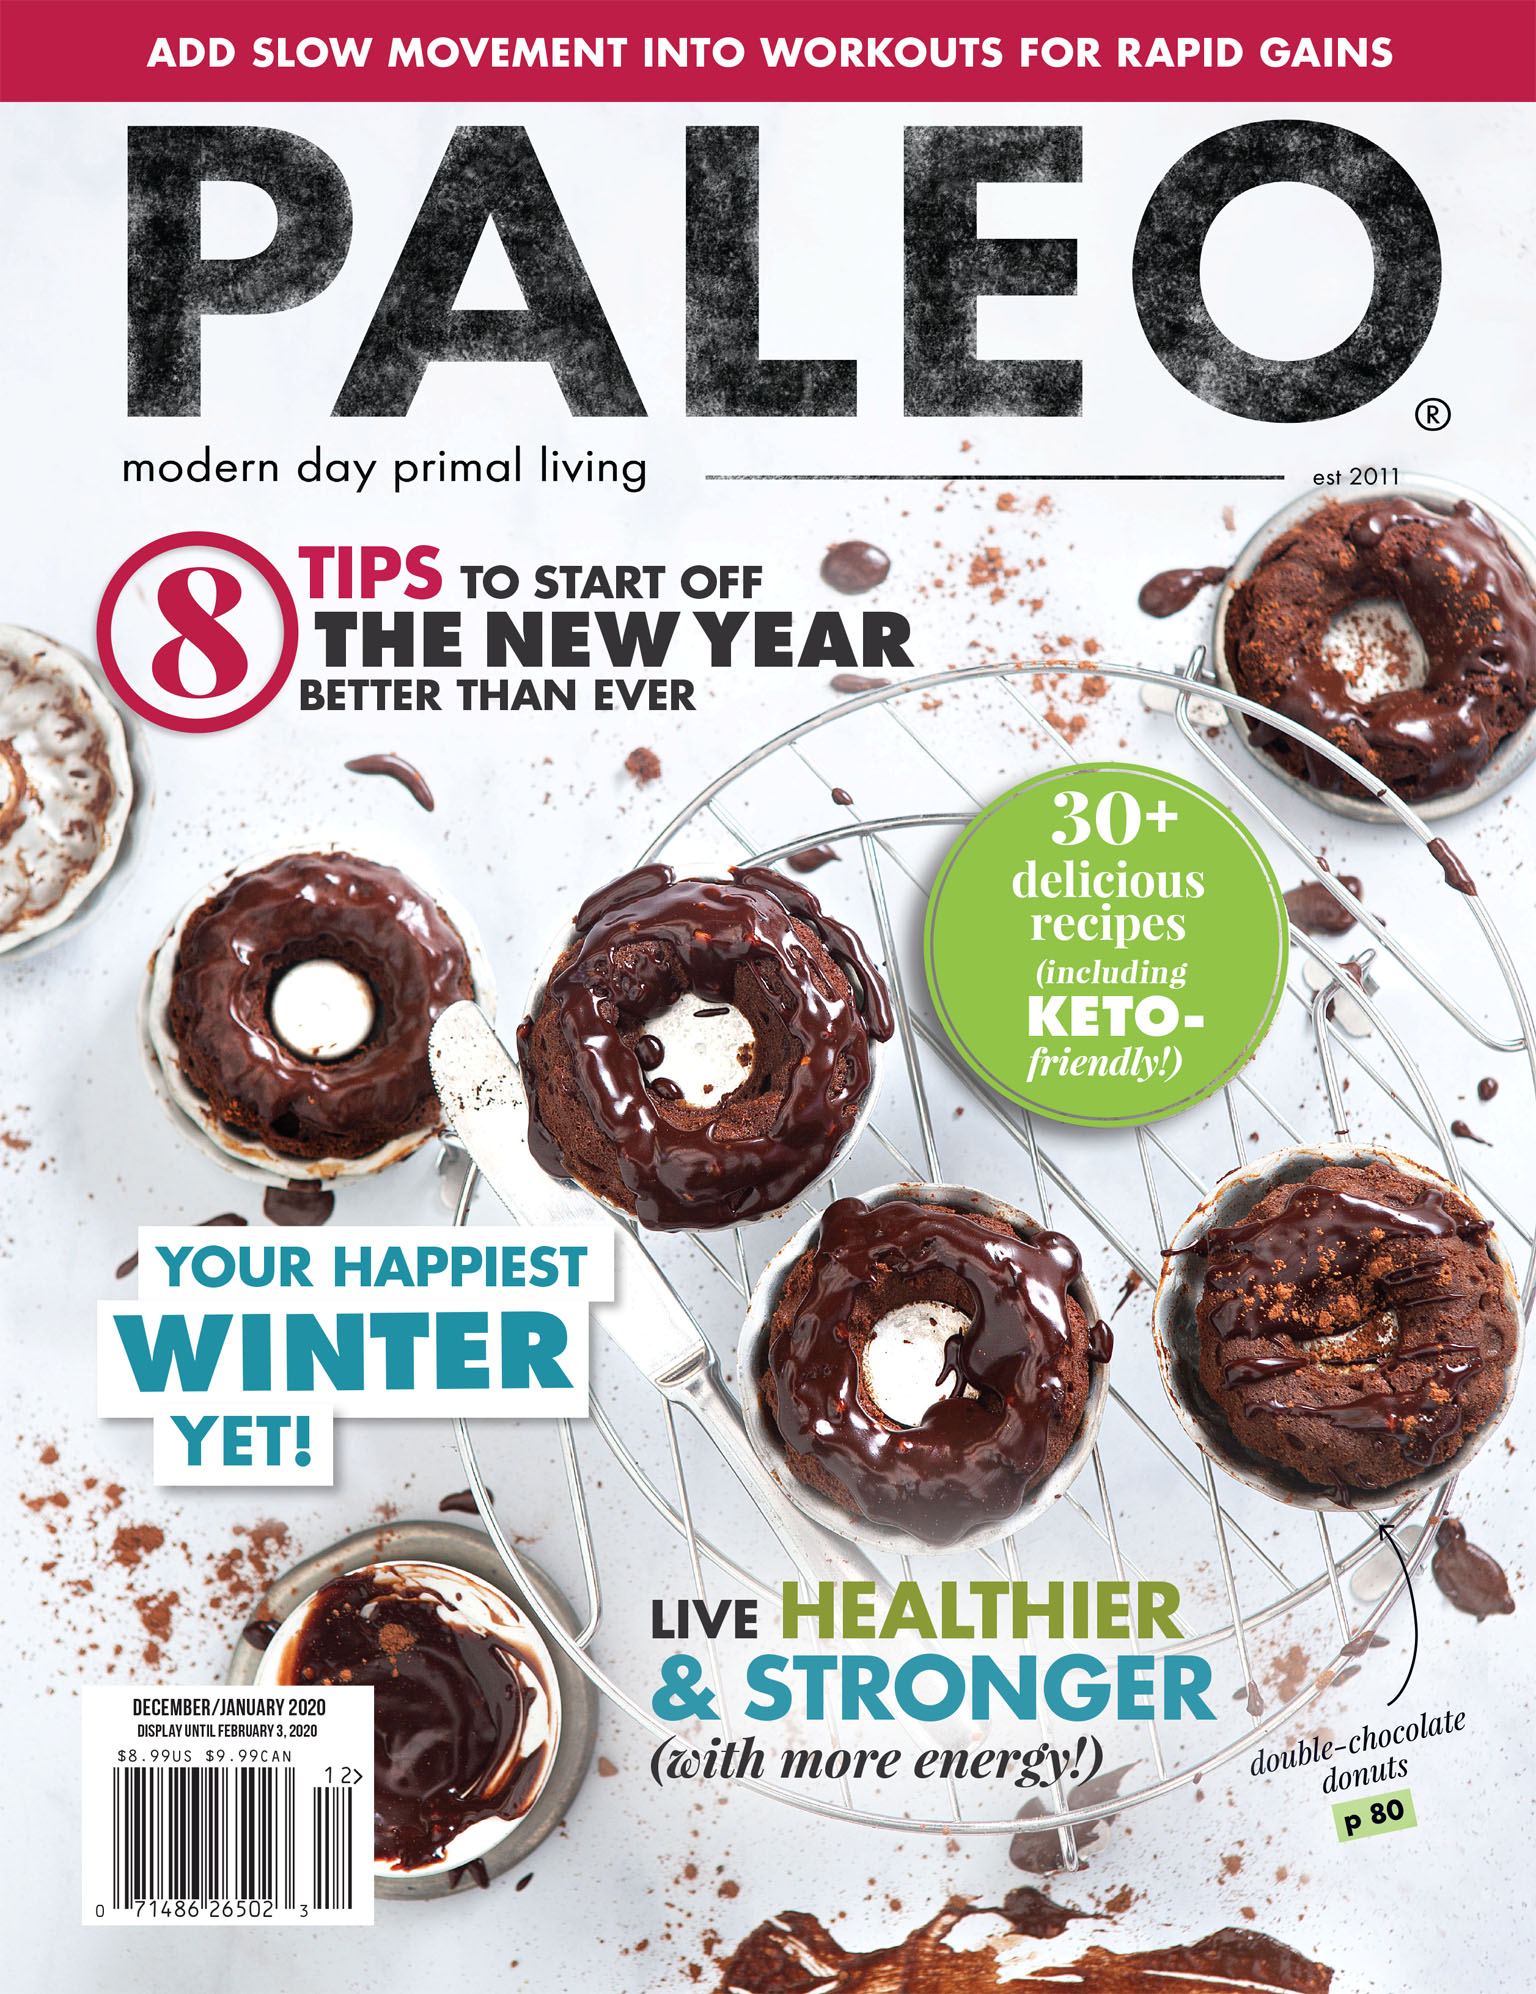 Paleo Magazine Cover Photo by Savannah Wishart - Chocolate Donuts